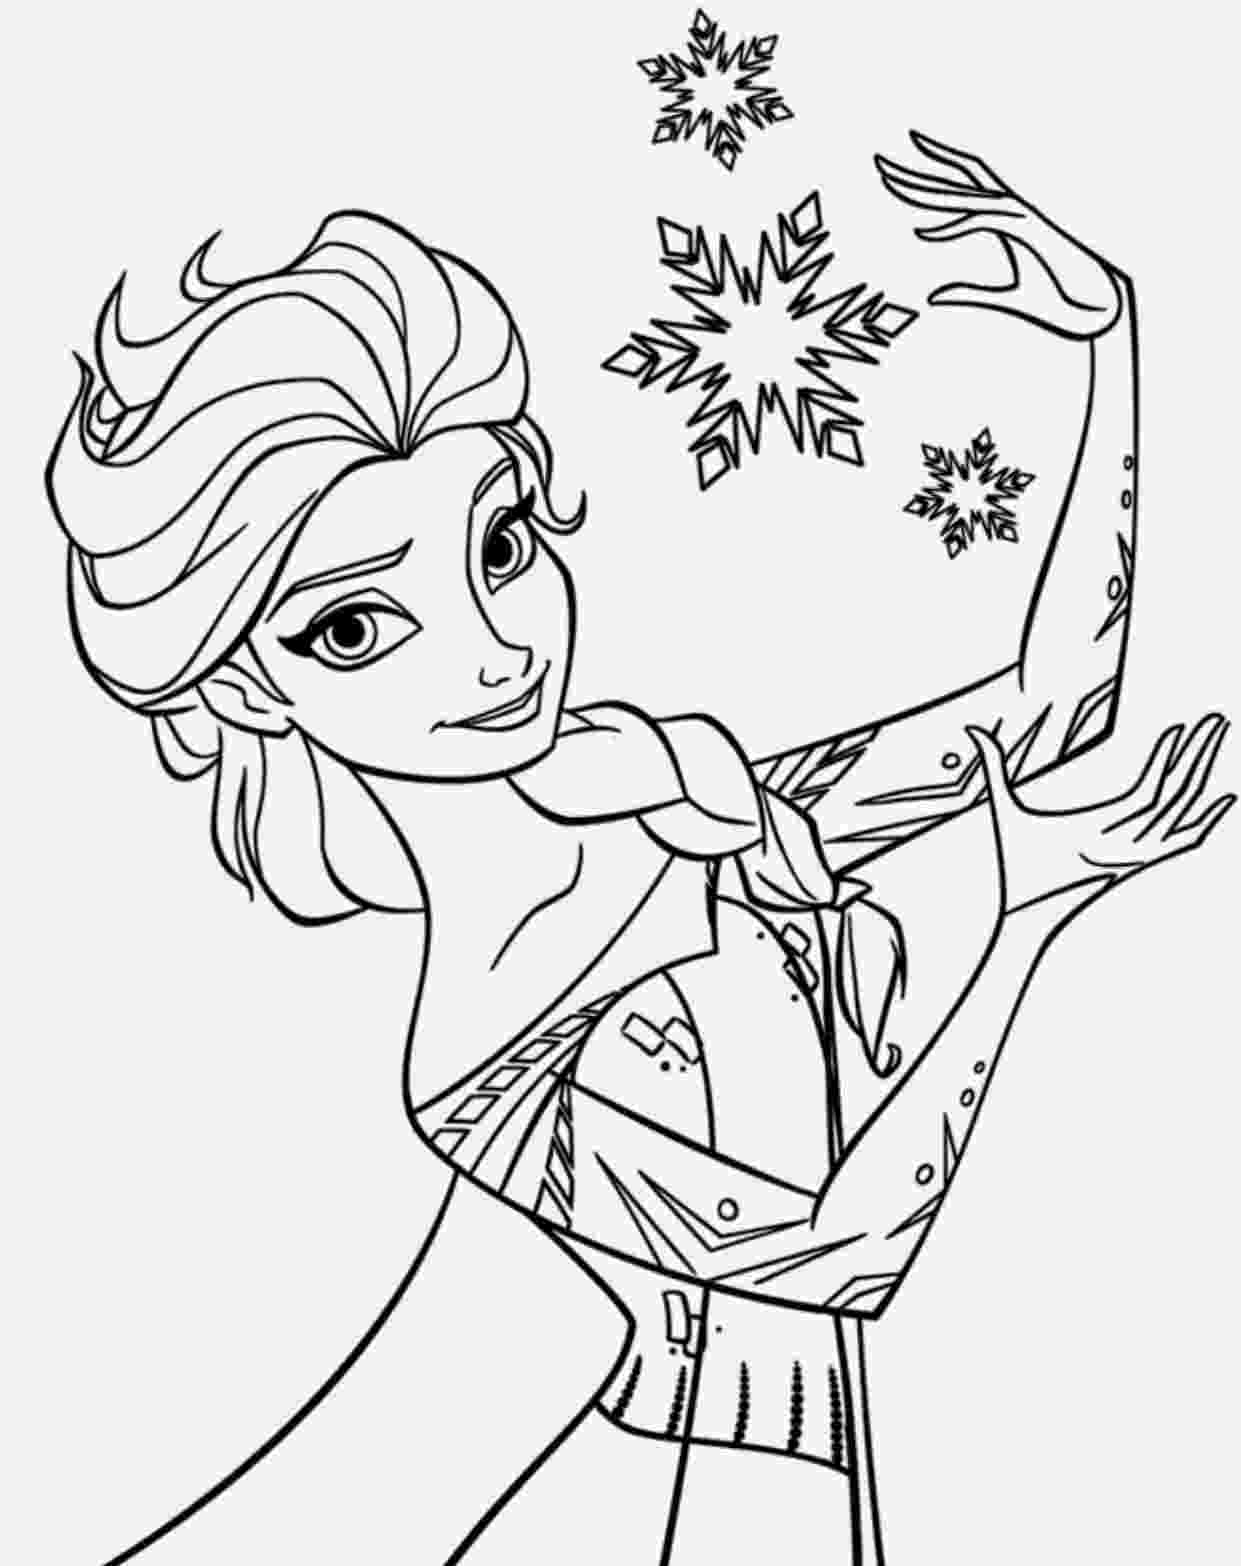 frozen coloring printables 15 beautiful disney frozen coloring pages free instant coloring frozen printables